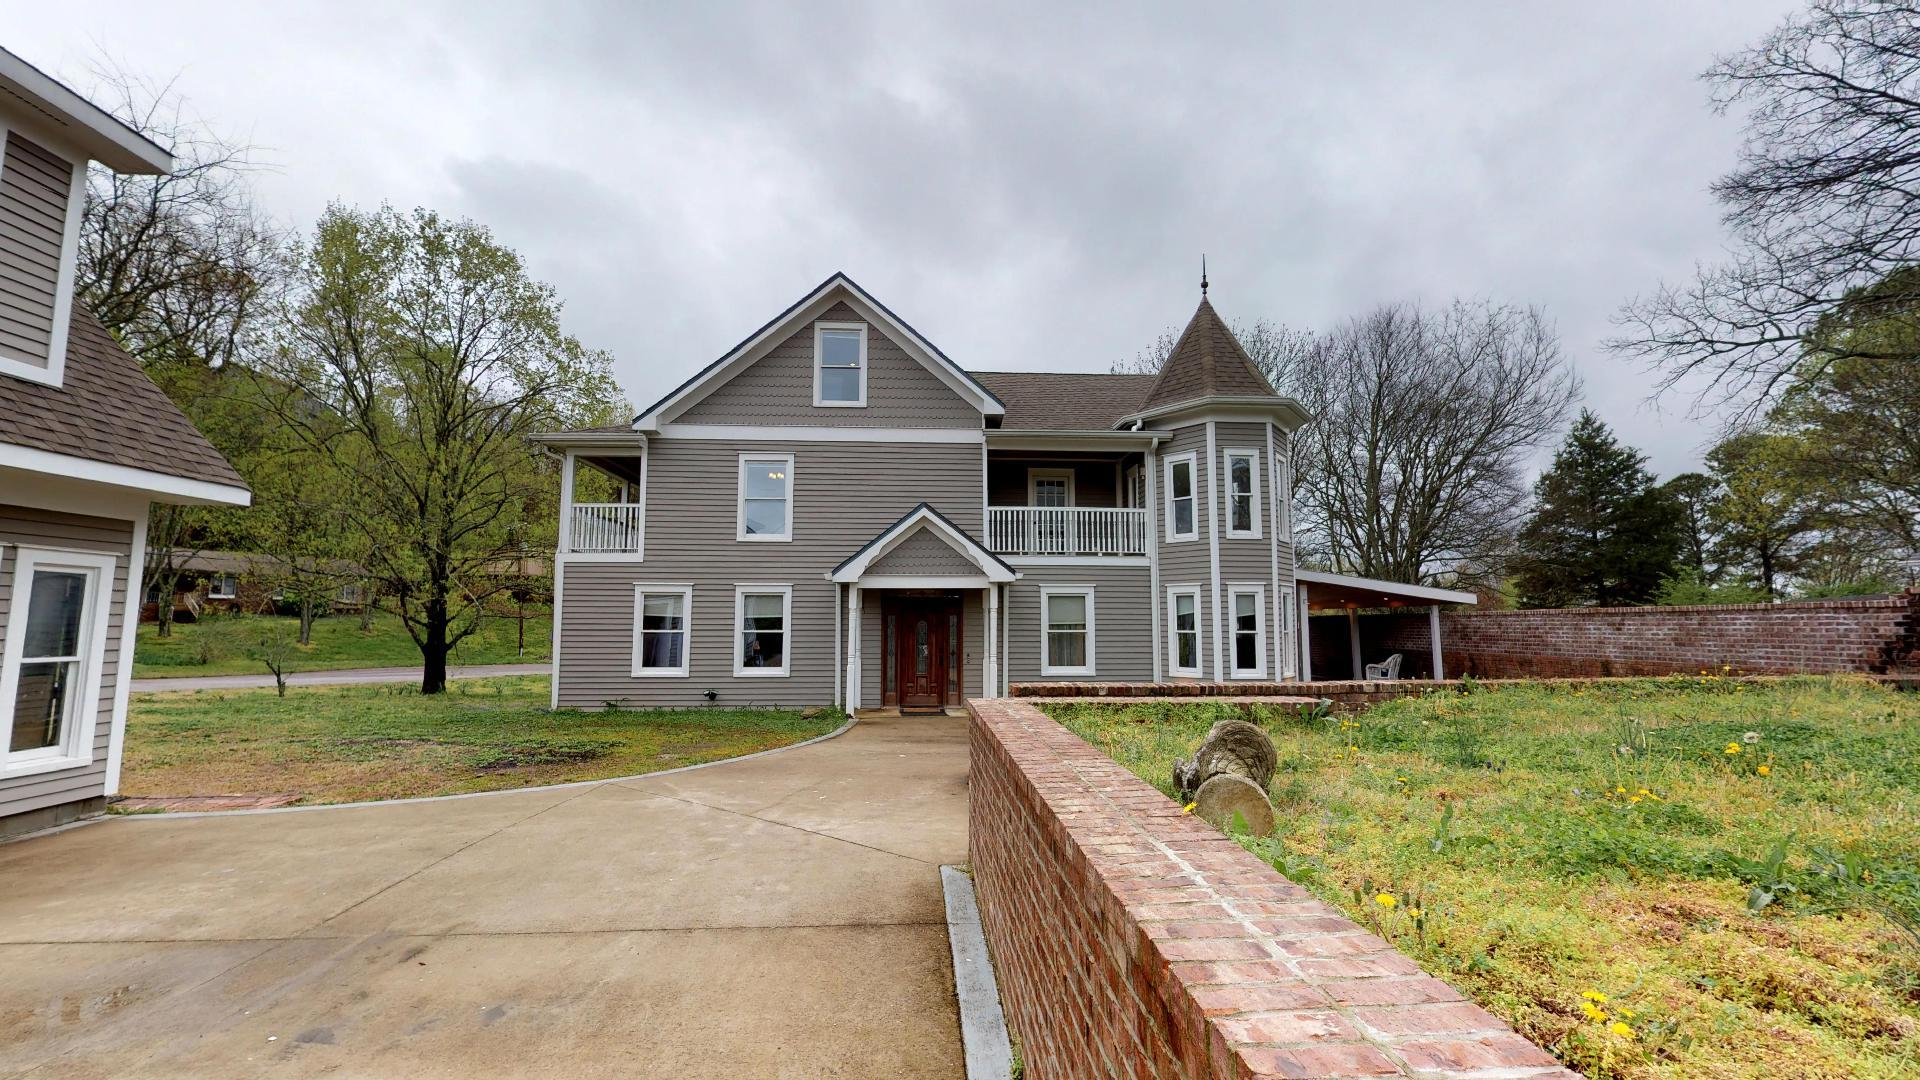 145 Cross Timbers Dr, Bellevue, Tennessee